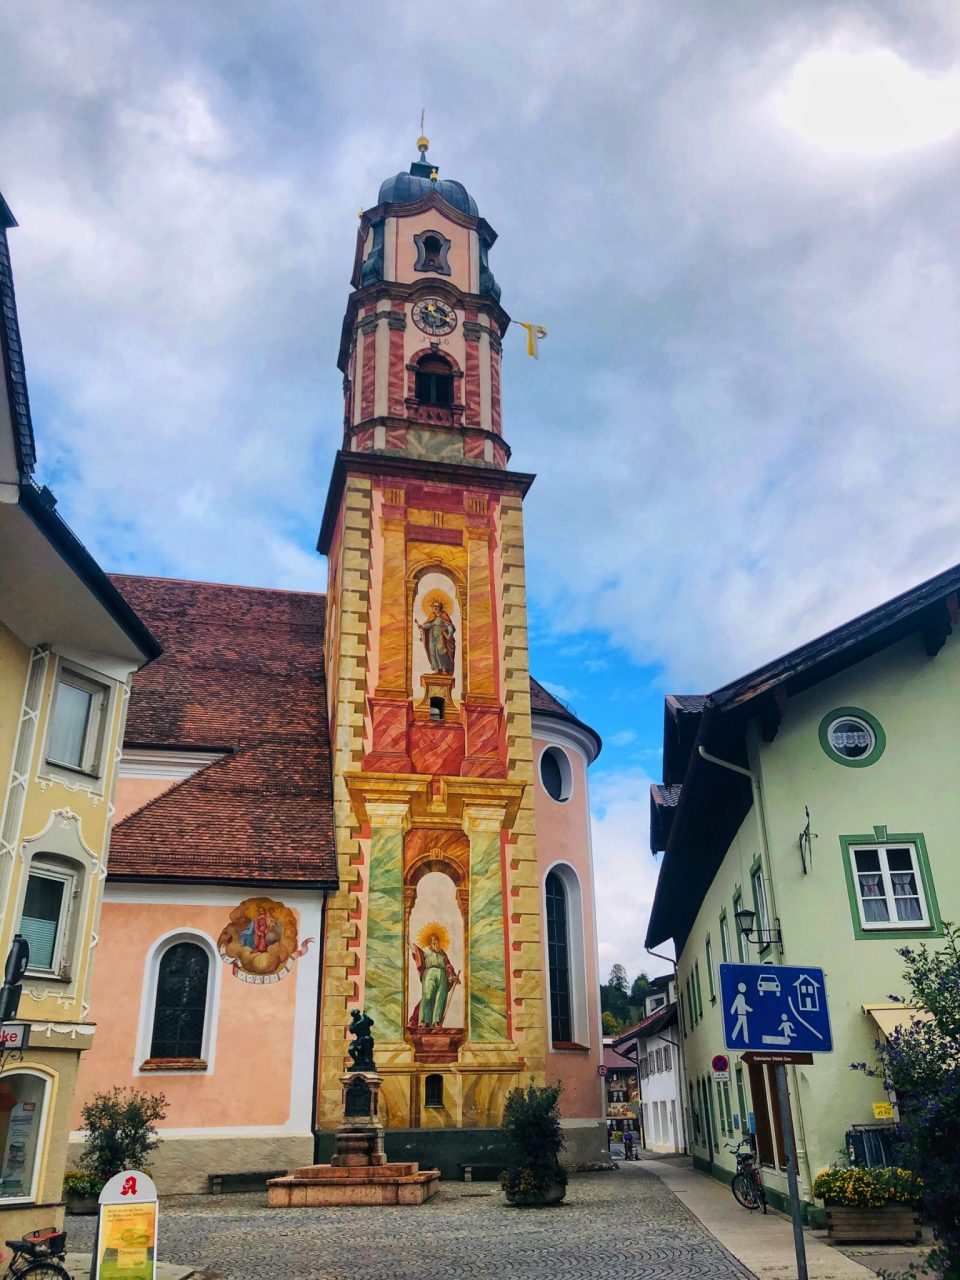 Church of Saint Peter and Paul, Mittenwald